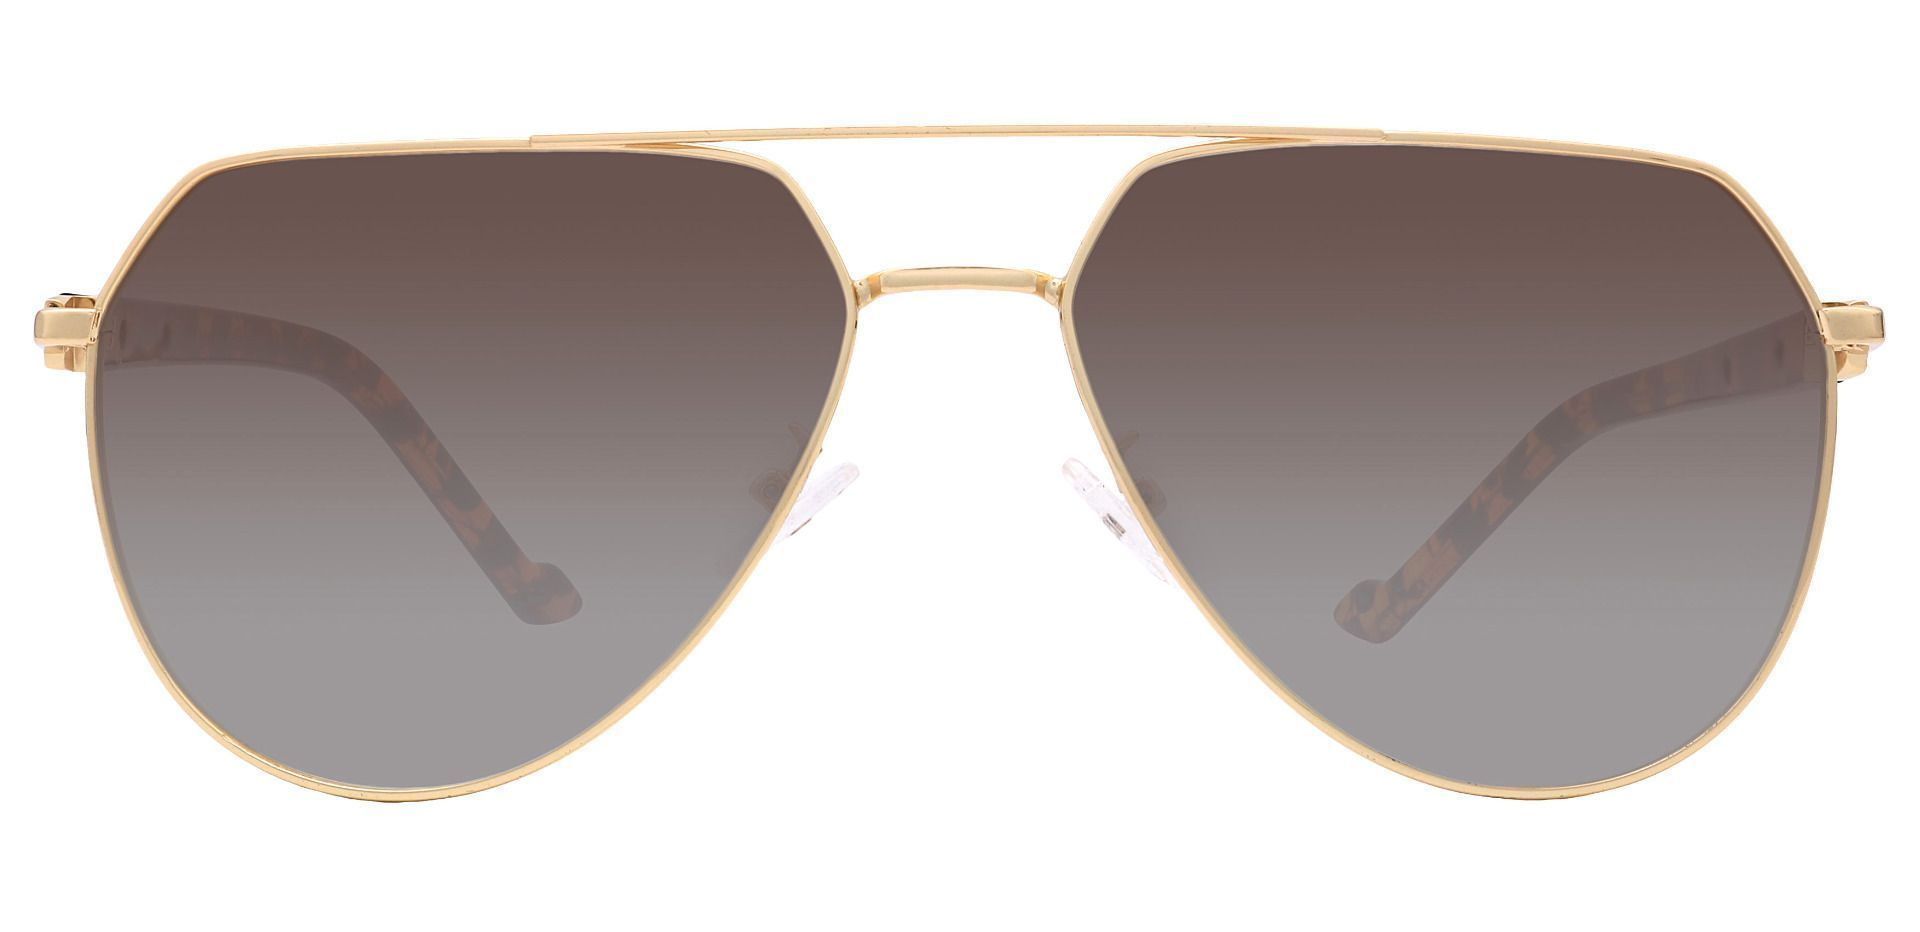 Wright Aviator Non-Rx Sunglasses - Yellow Frame With Brown Lenses